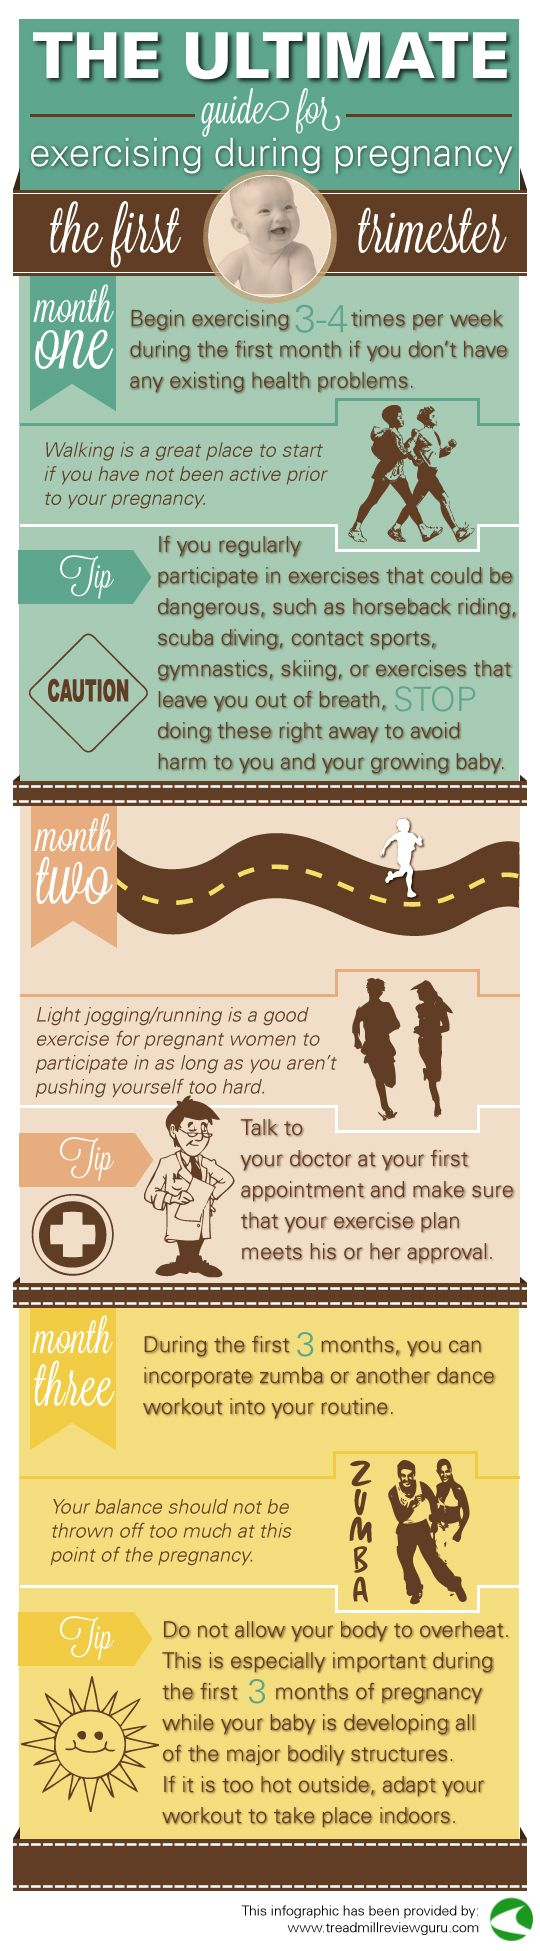 ultimate guide for exercising during pregnancy